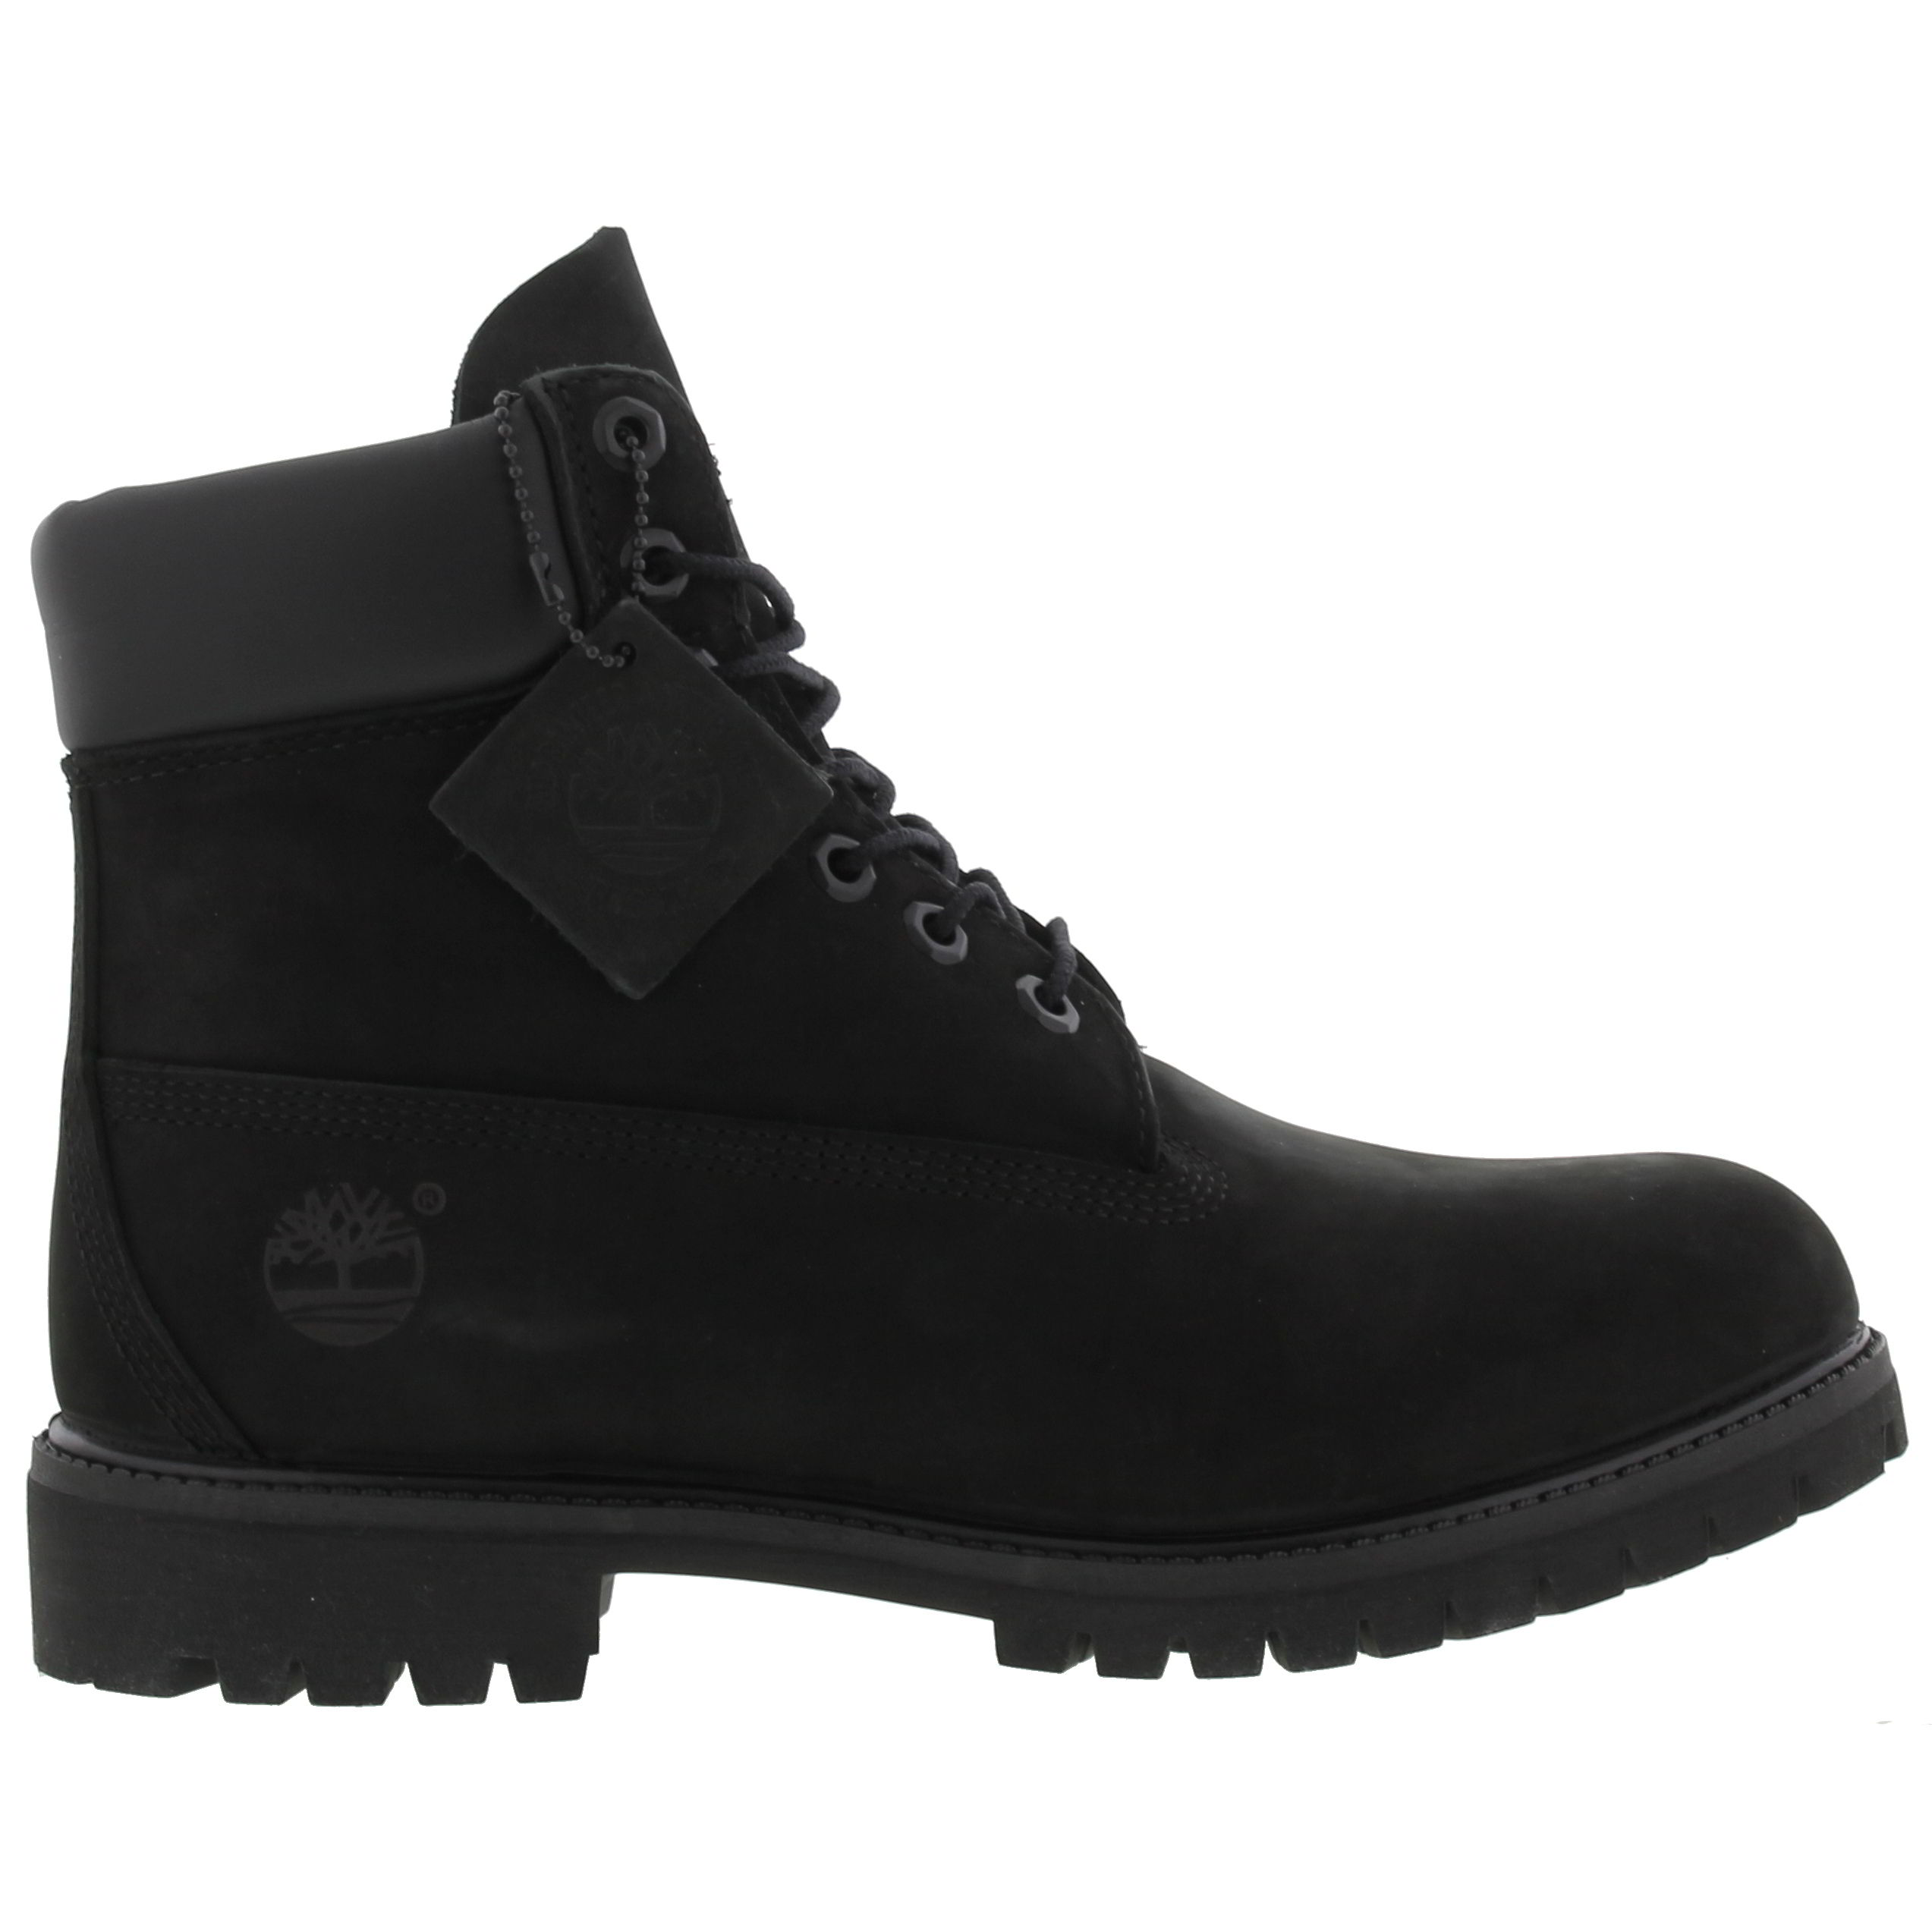 timberland men's 6in. premium waterproof boot black leather